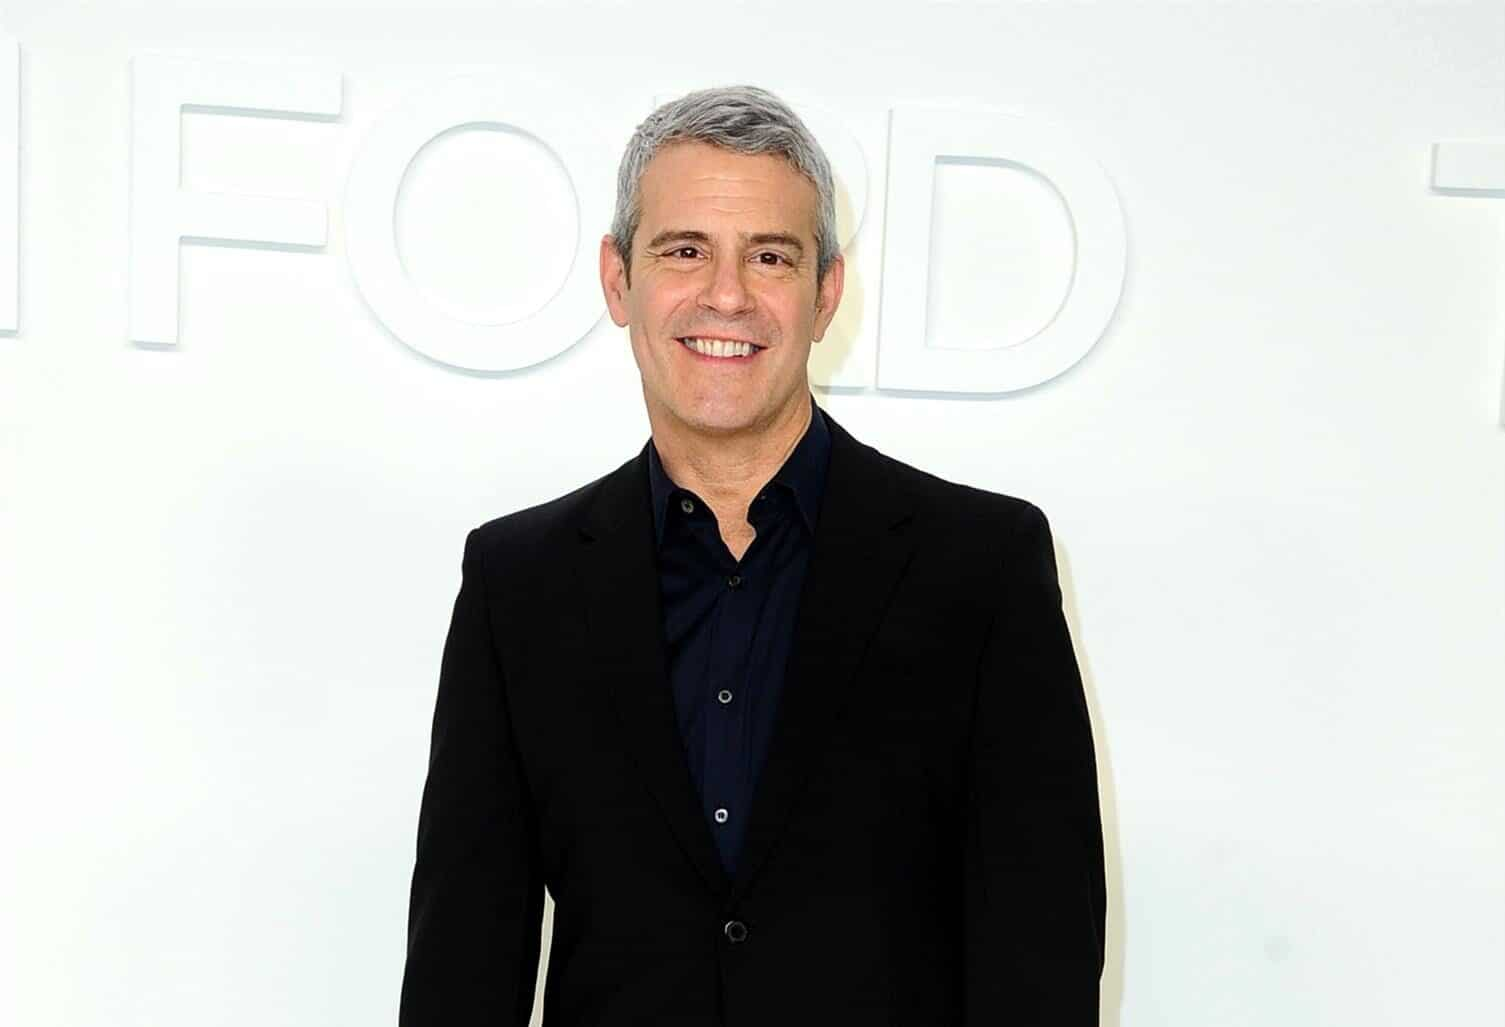 Andy Cohen Dishes on His Wildest Reality TV Moment, Reason He Would Never Do a Reality Show About His Life and What He Looks For in a Housewife